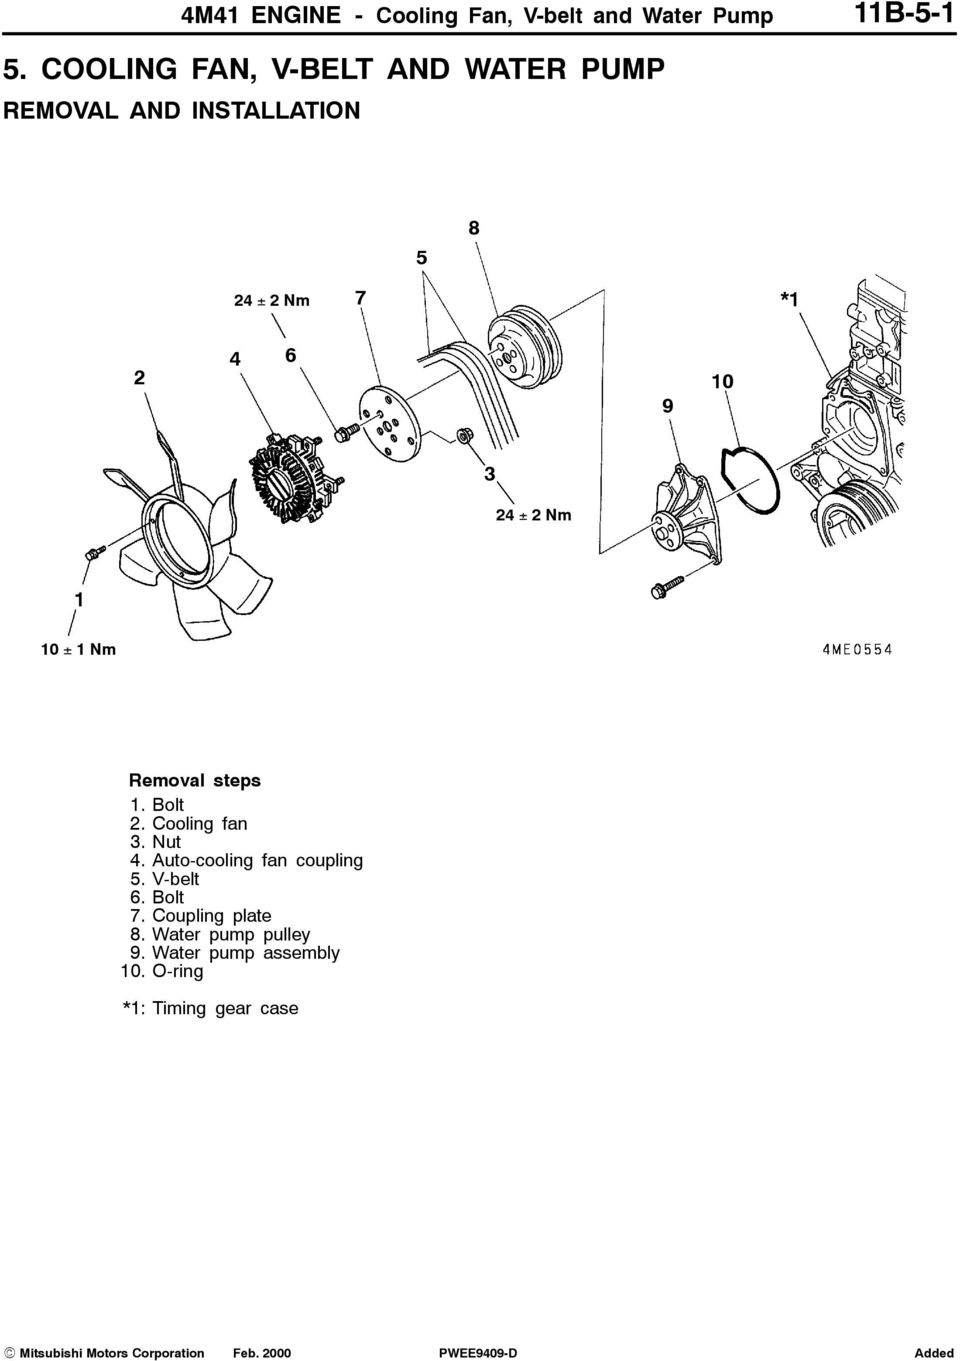 ENGINE 4M41 11B-0-1 CONTENTS - PDF